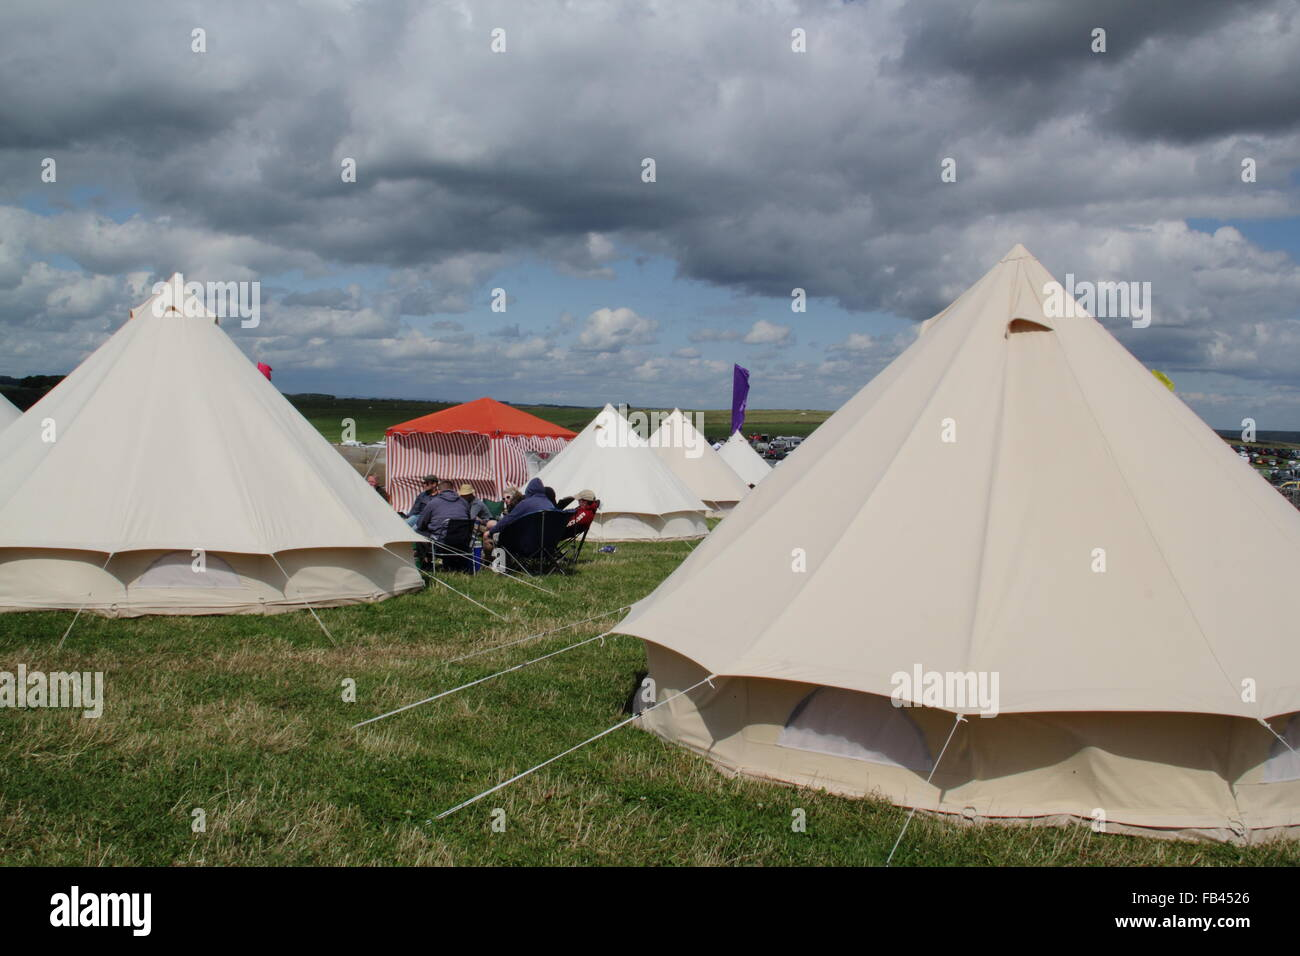 Yurts in the u0027gl&ingu0027 area at the Y Not music festival in England where festival goers are provided with luxury c&ing UK & Yurts in the u0027glampingu0027 area at the Y Not music festival in ...